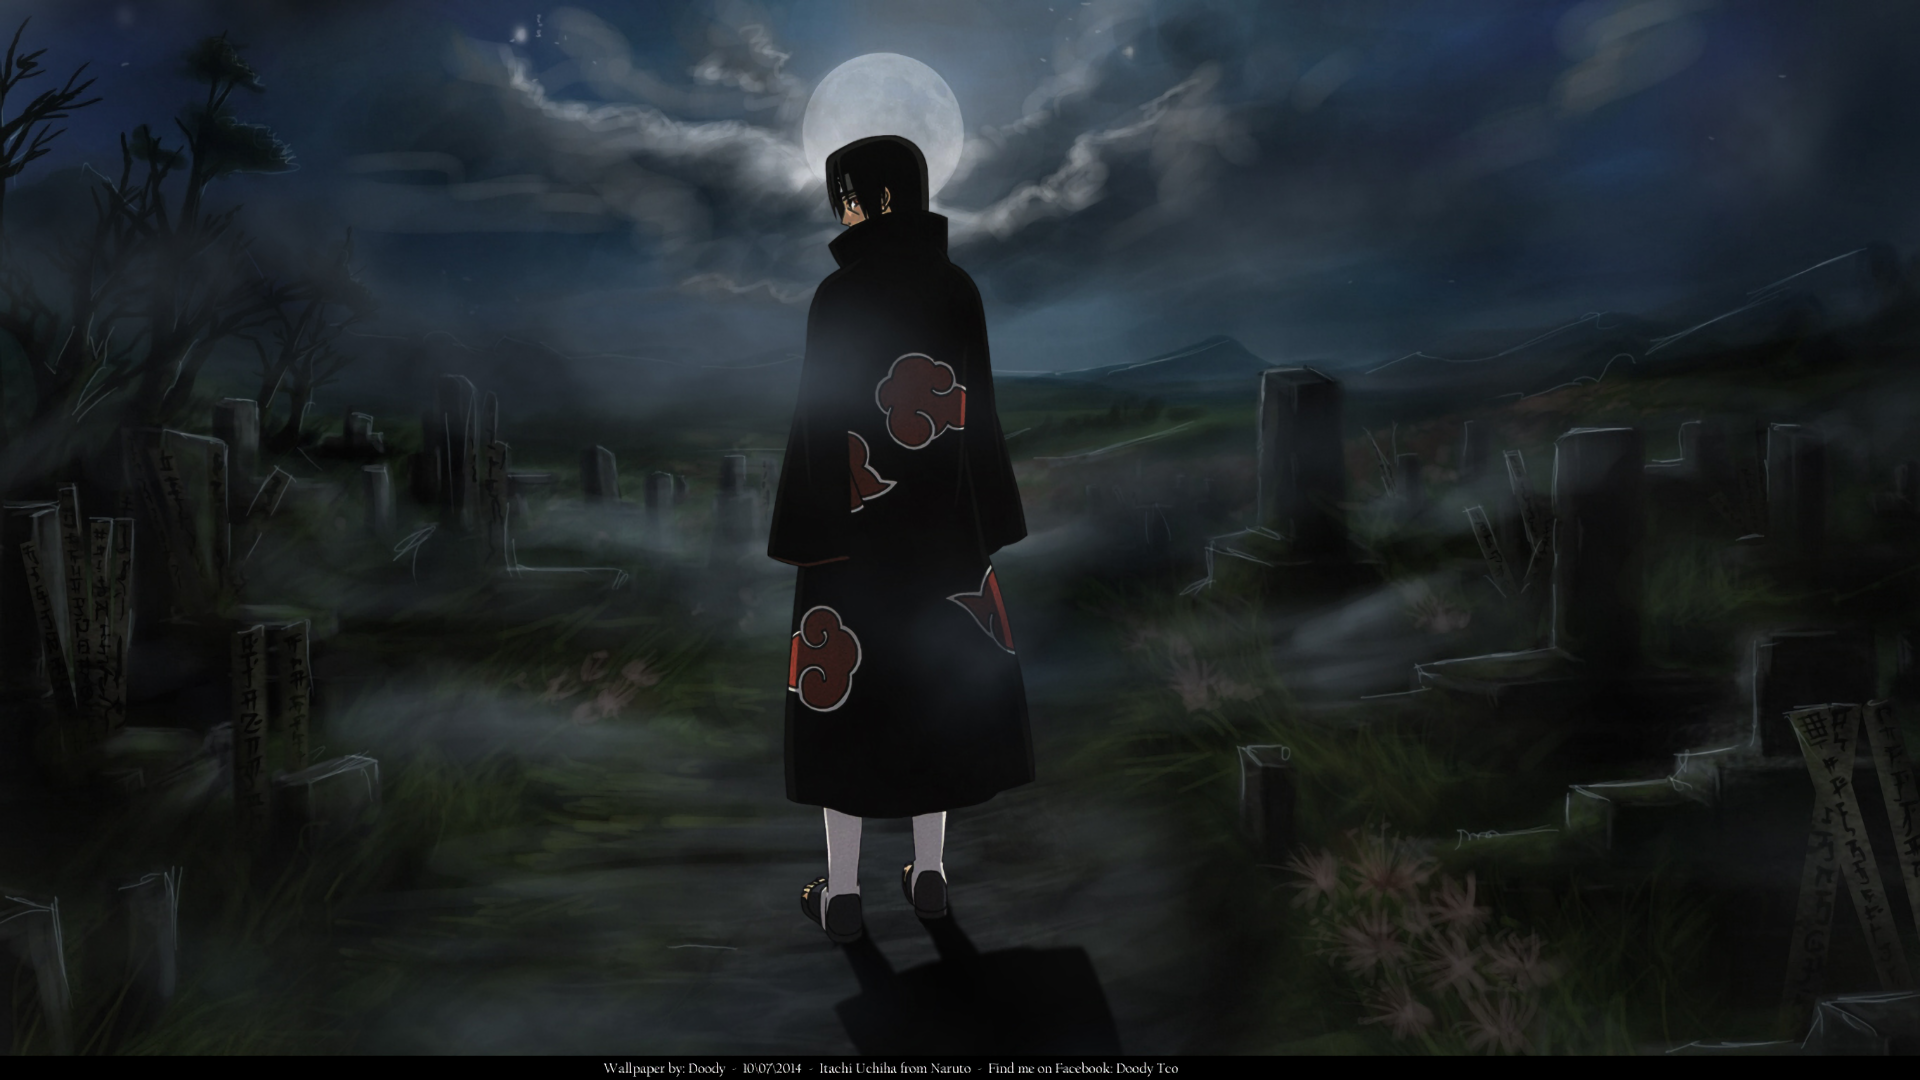 Itachi Uchiha Susanoo Wallpaper Hd: Naruto HD Wallpaper